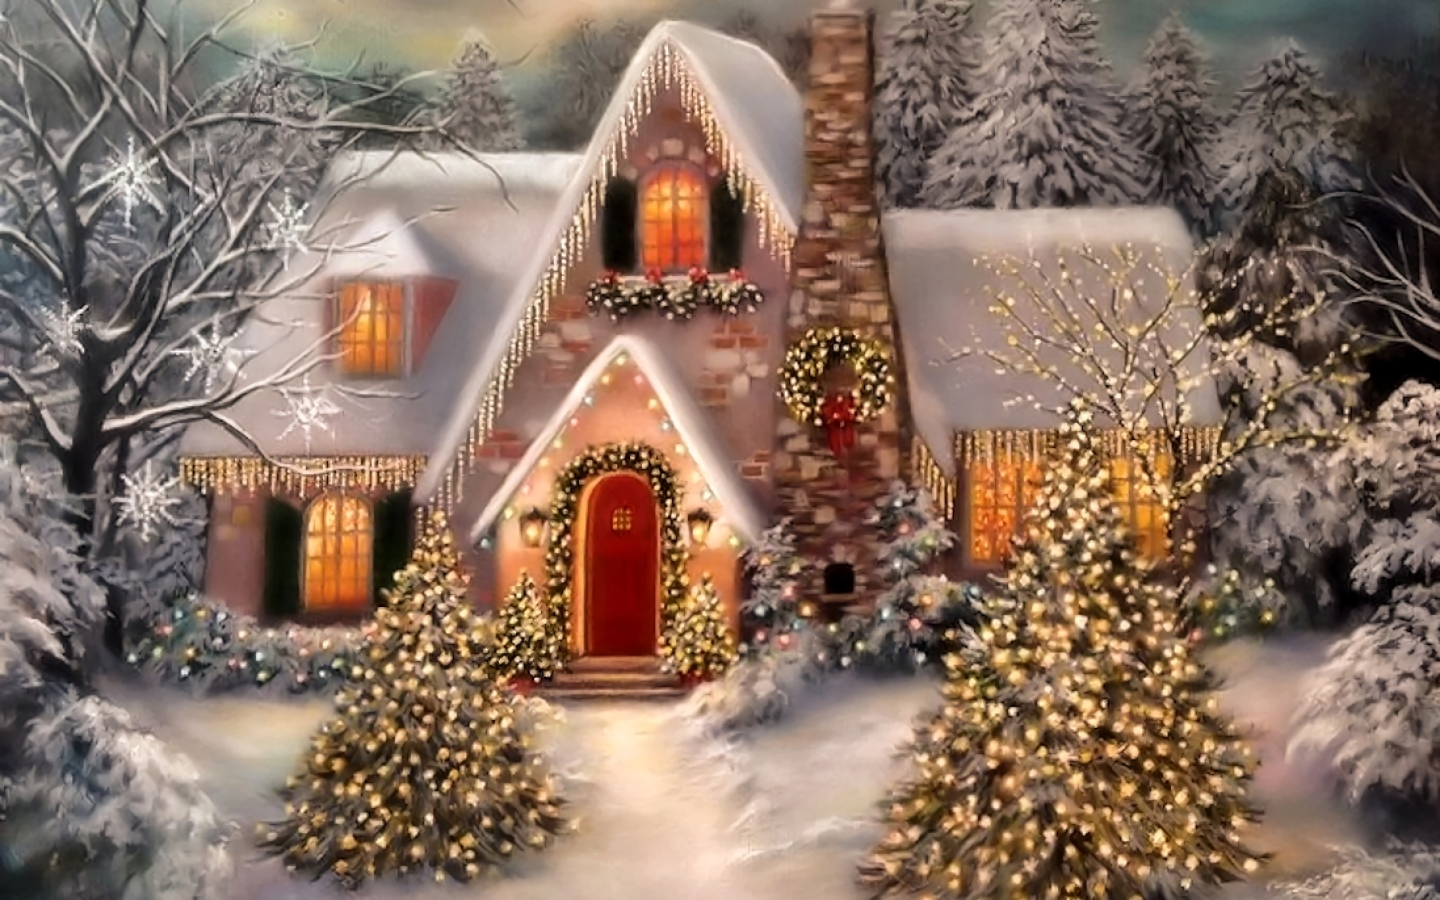 House Decorated For The Holidays Fondo De Pantalla And Fondo